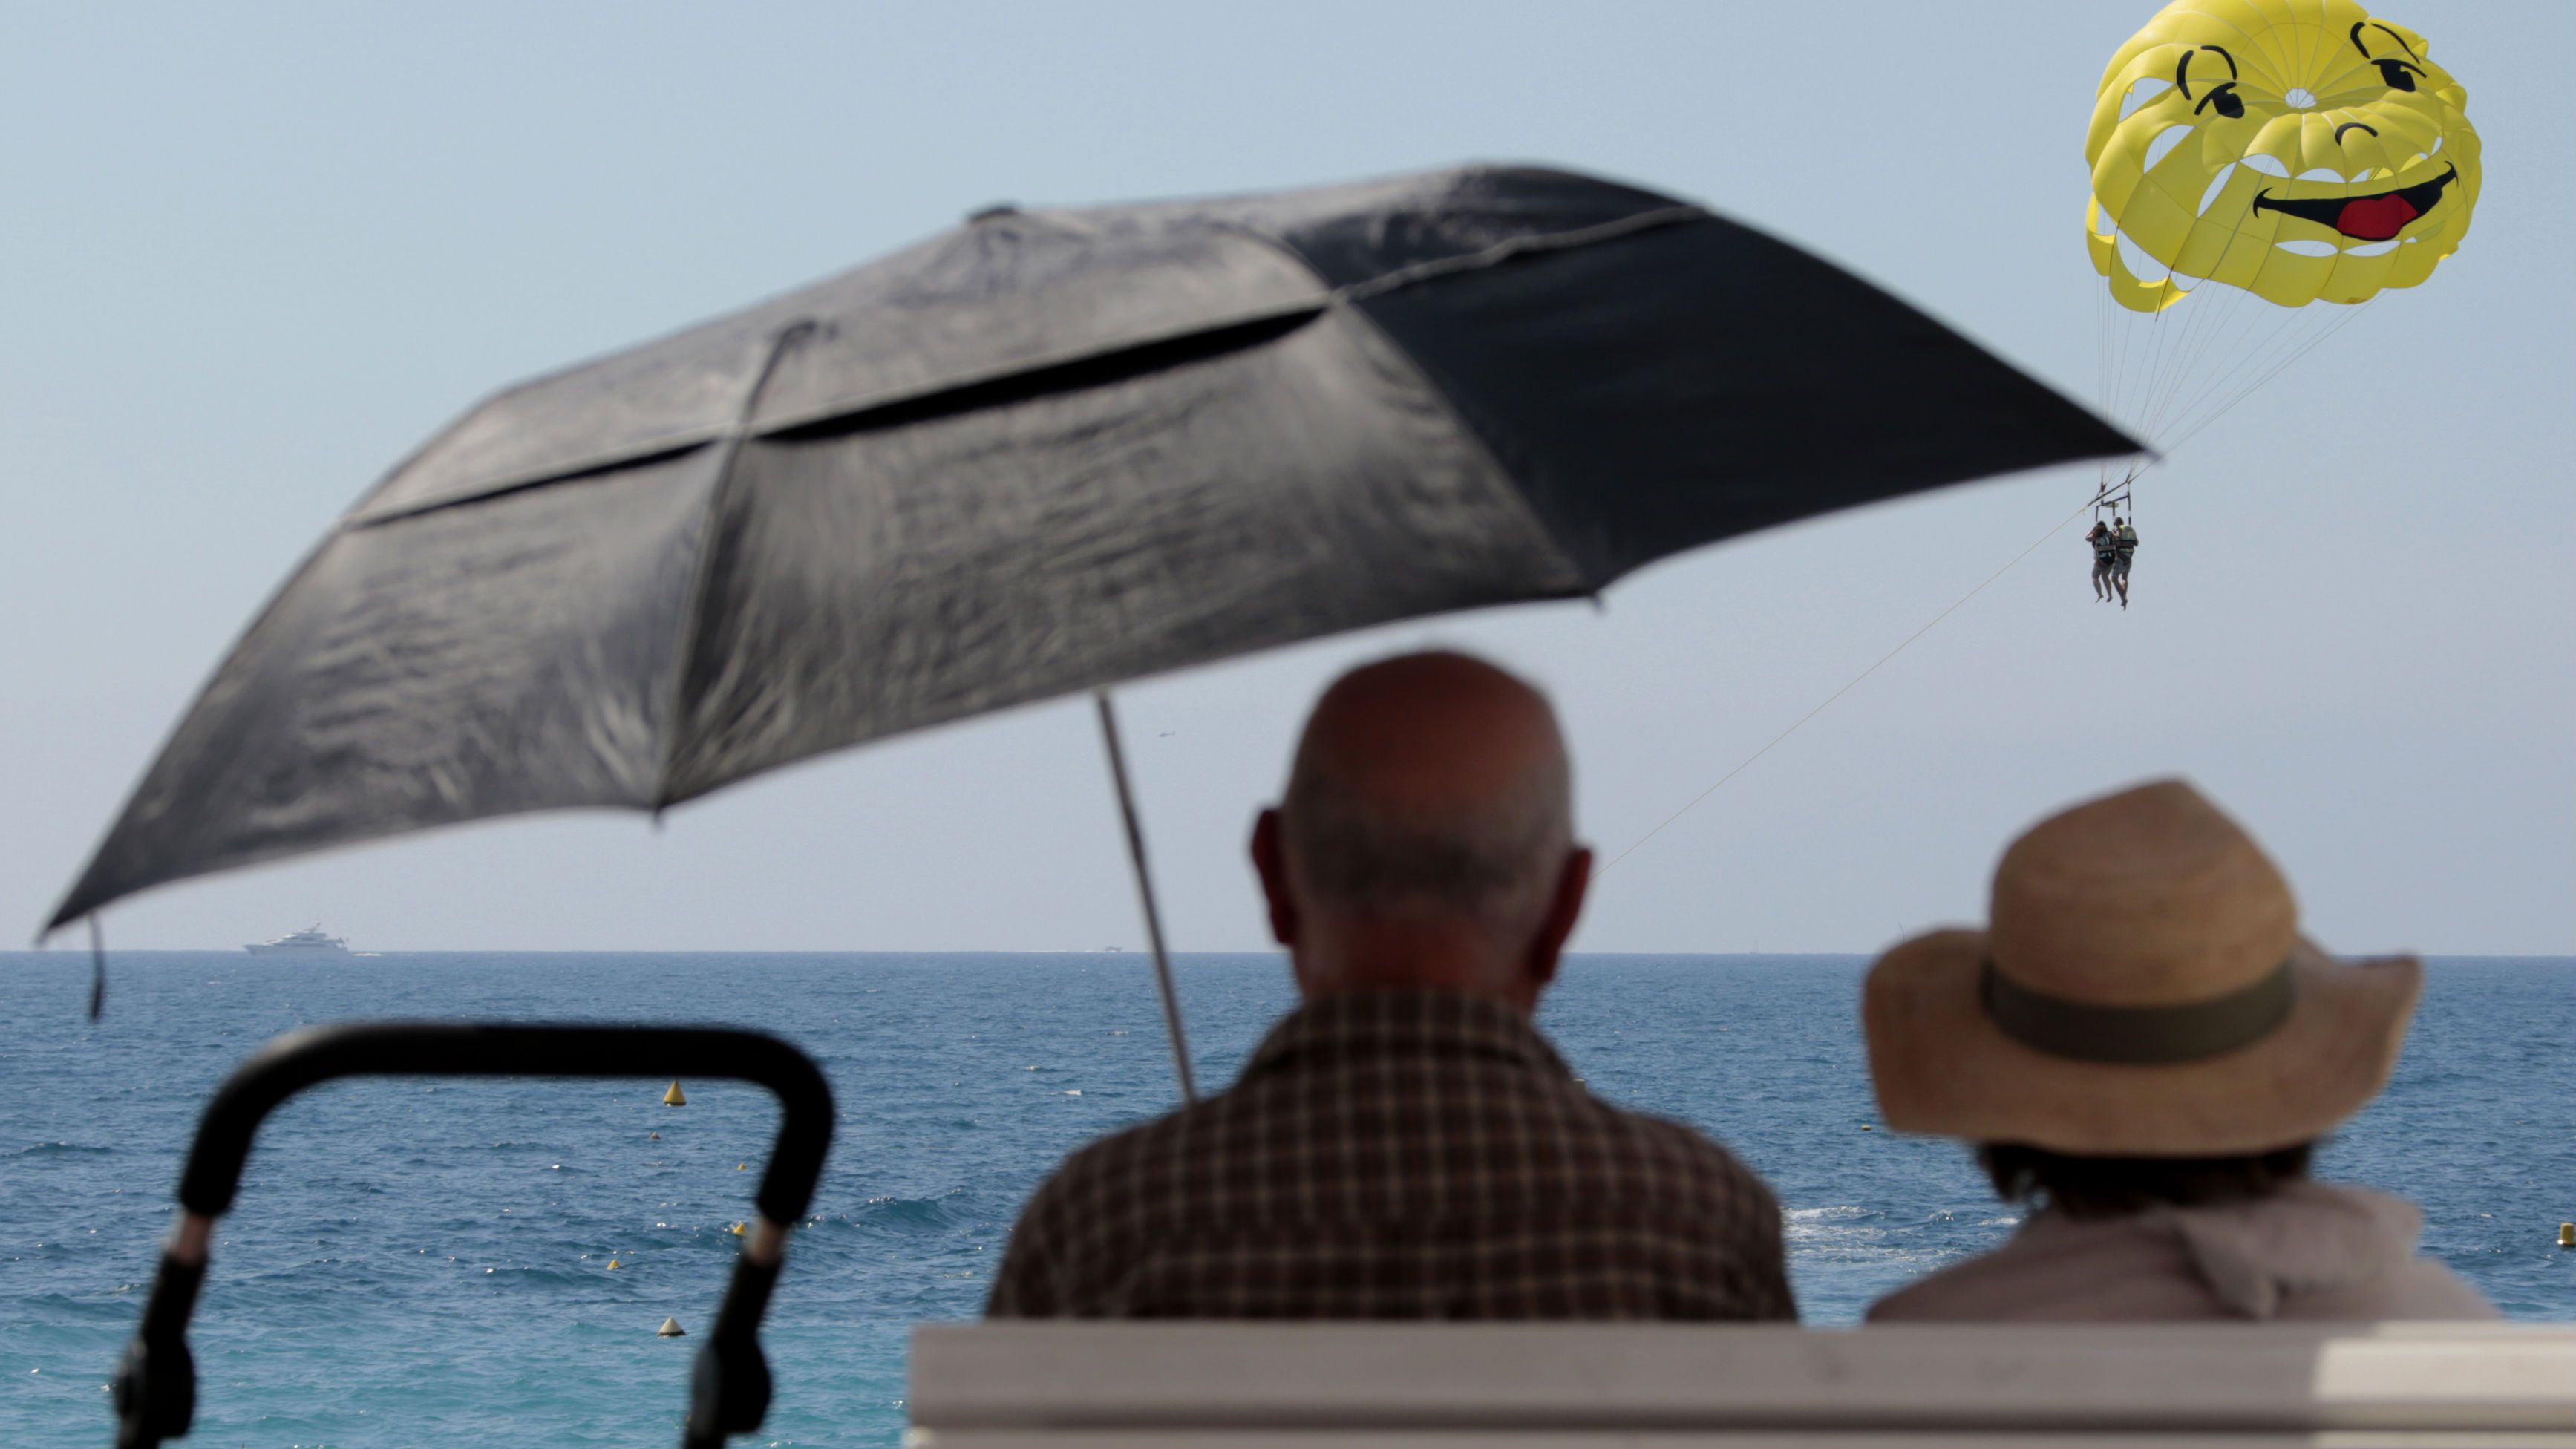 Two elderly people sit on a bench as they look at a parascending during a sunny summer day in Nice, southeastern France, July 28, 2014. REUTERS/Eric Gaillard (FRANCE - Tags: ENVIRONMENT TRAVEL SOCIETY)